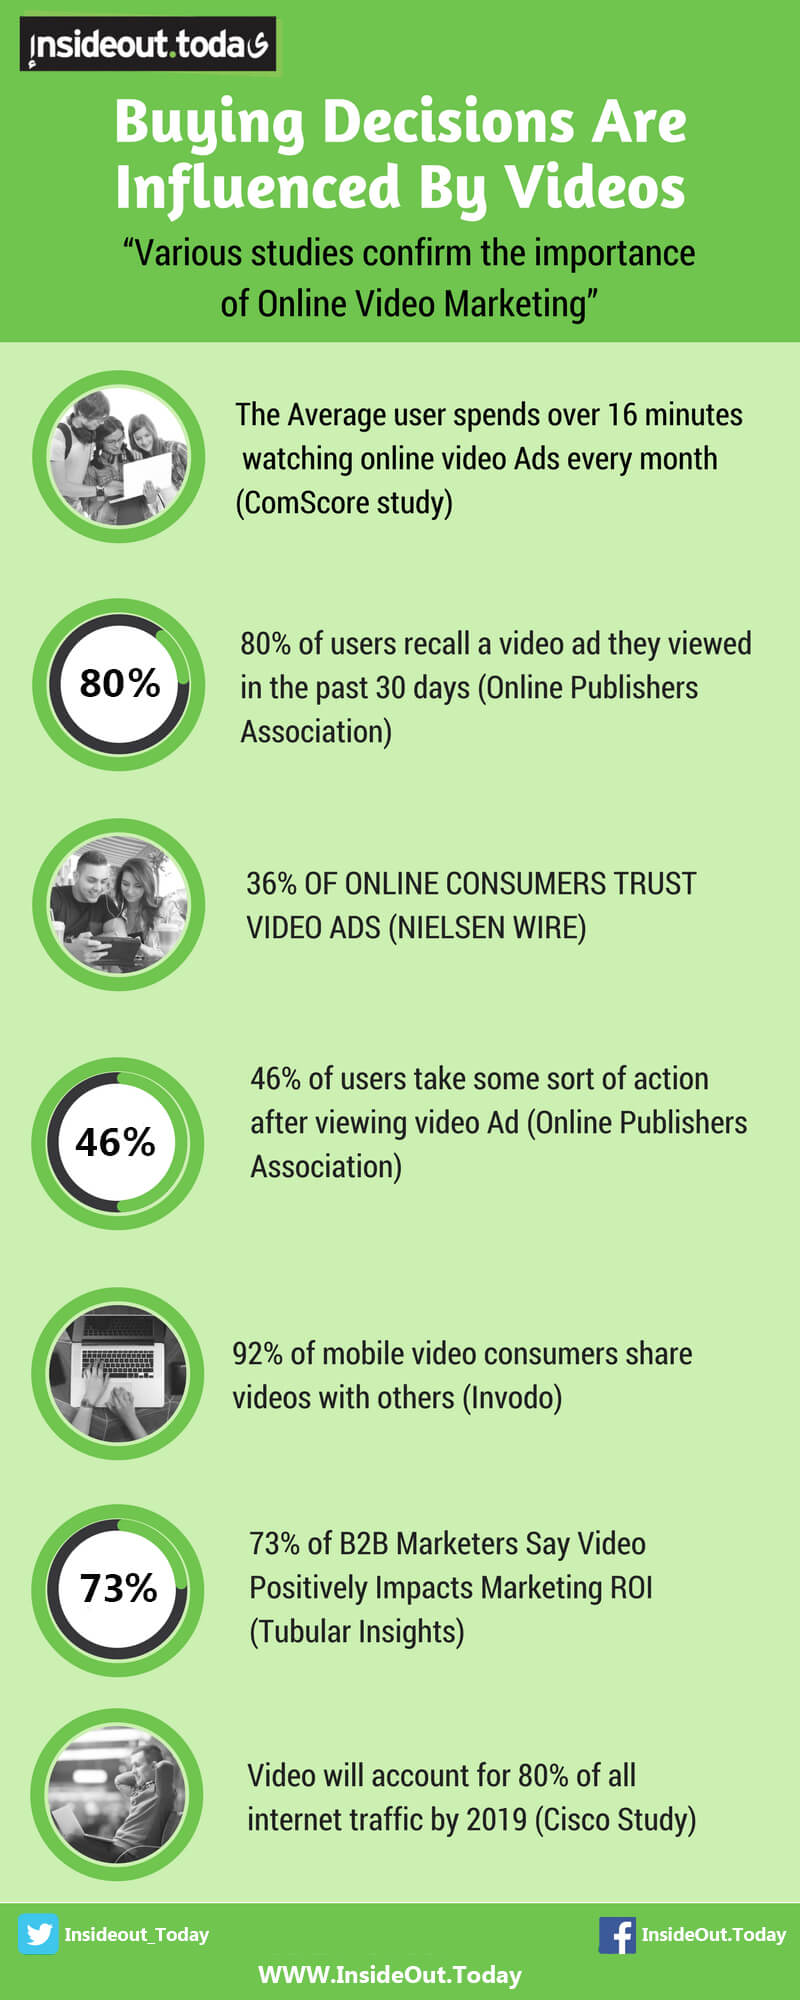 The importance of Online Video Marketing Infographic stats and figures for 2017